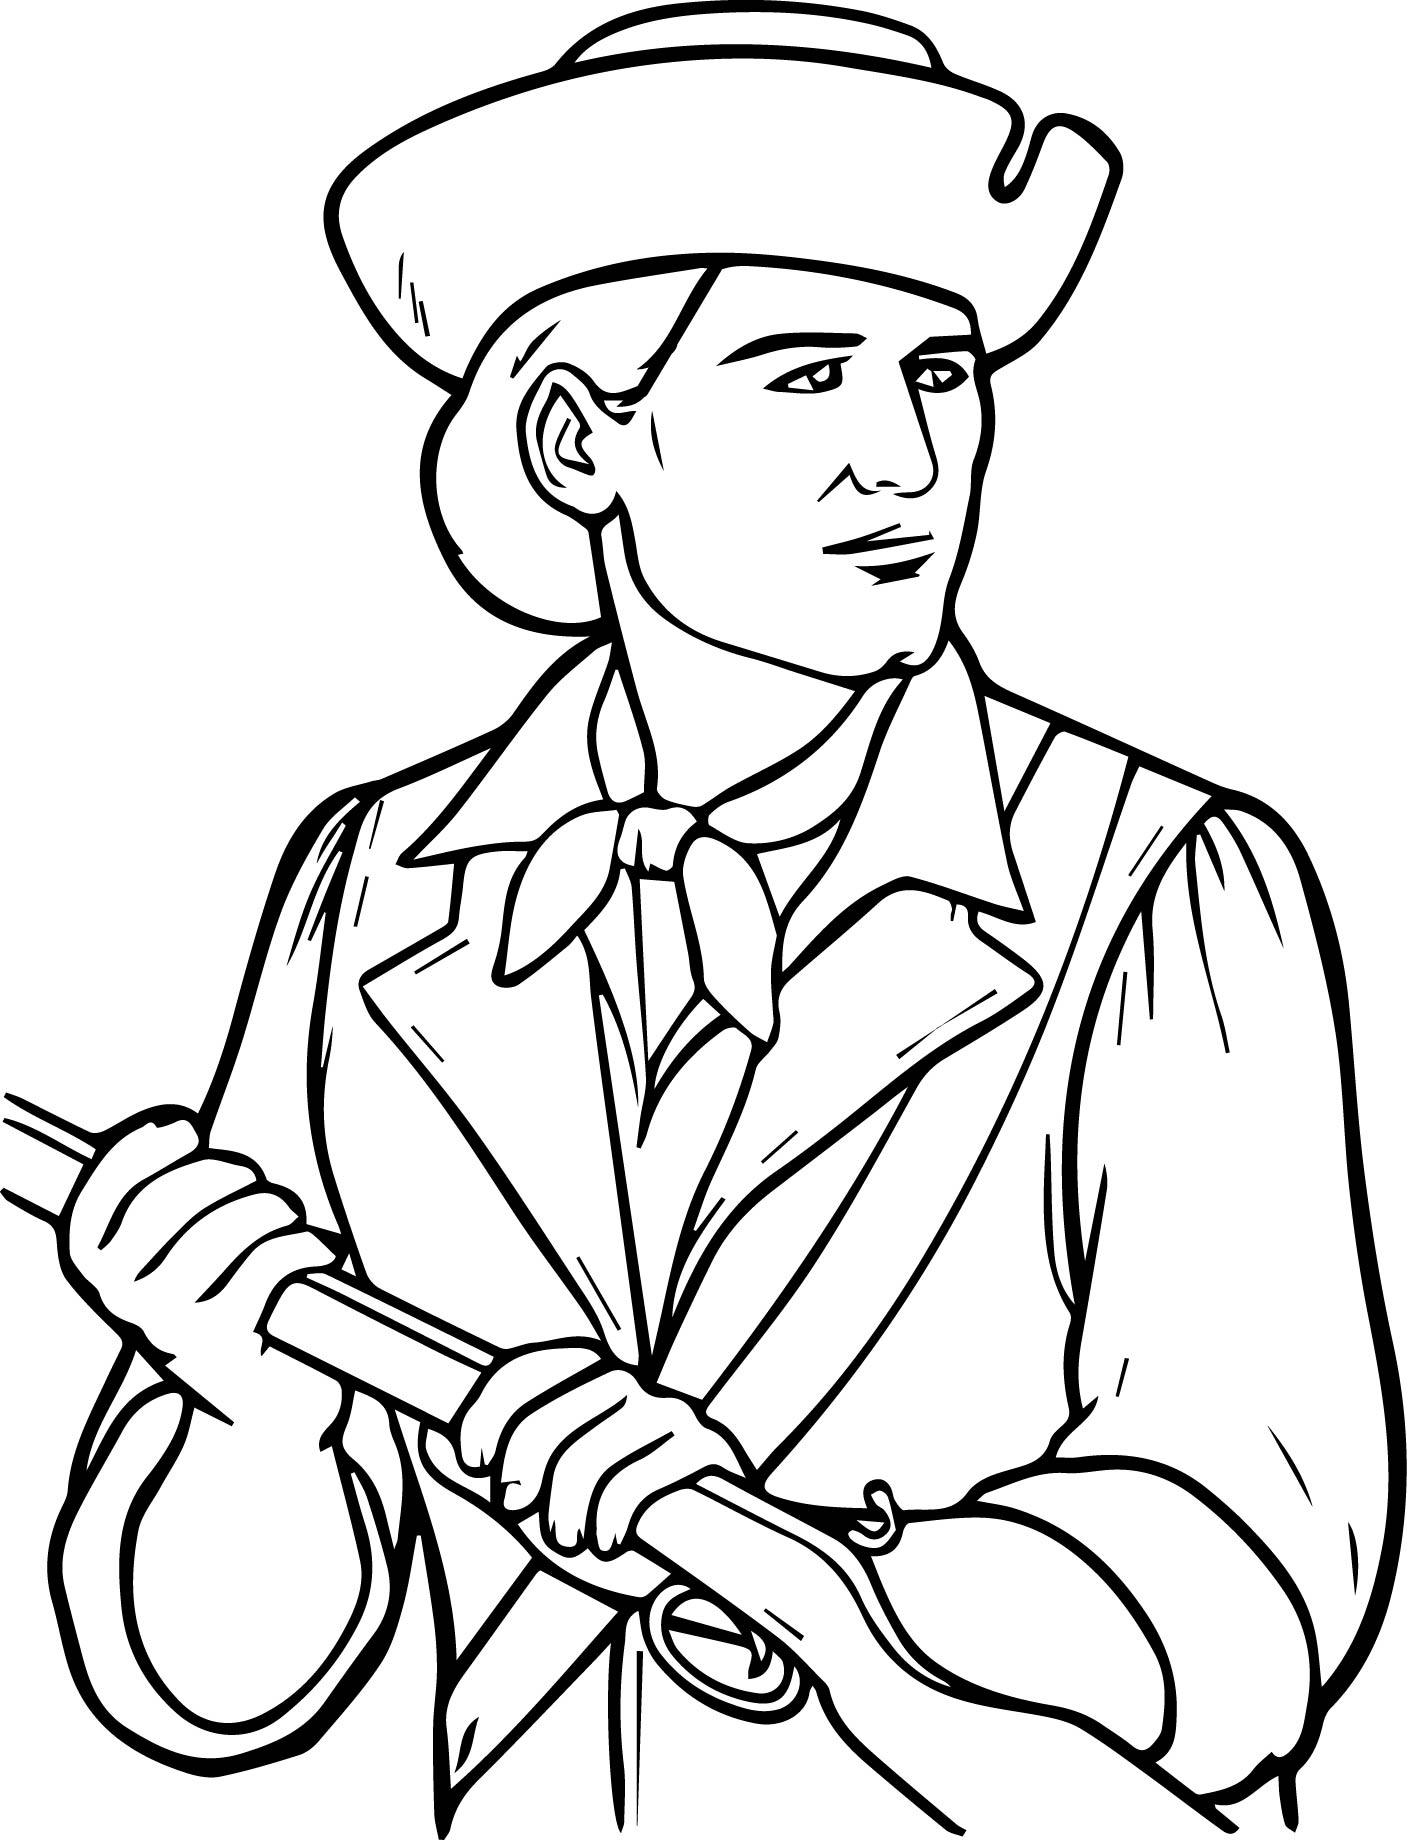 The Amazing Spiez Coloring Pages